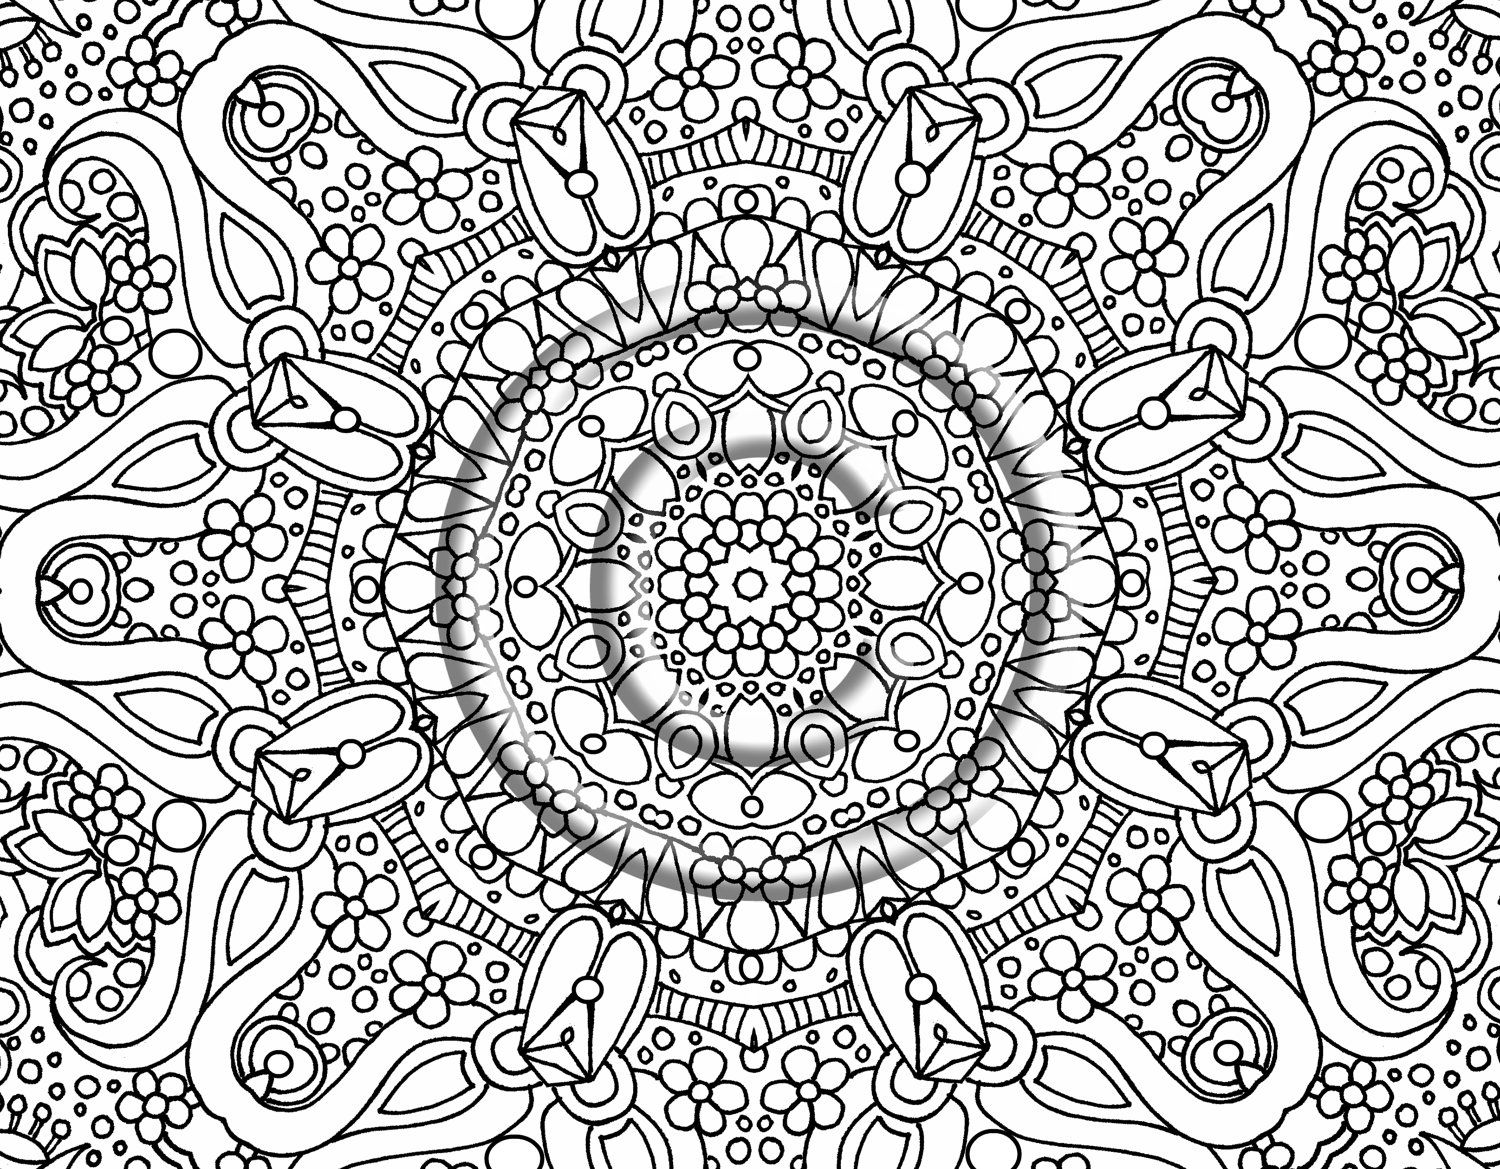 Coloring pages for adults abstract flowers - Abstract Coloring Pages Only Coloring Pages Coloring Pages For Adults Abstract Flowers